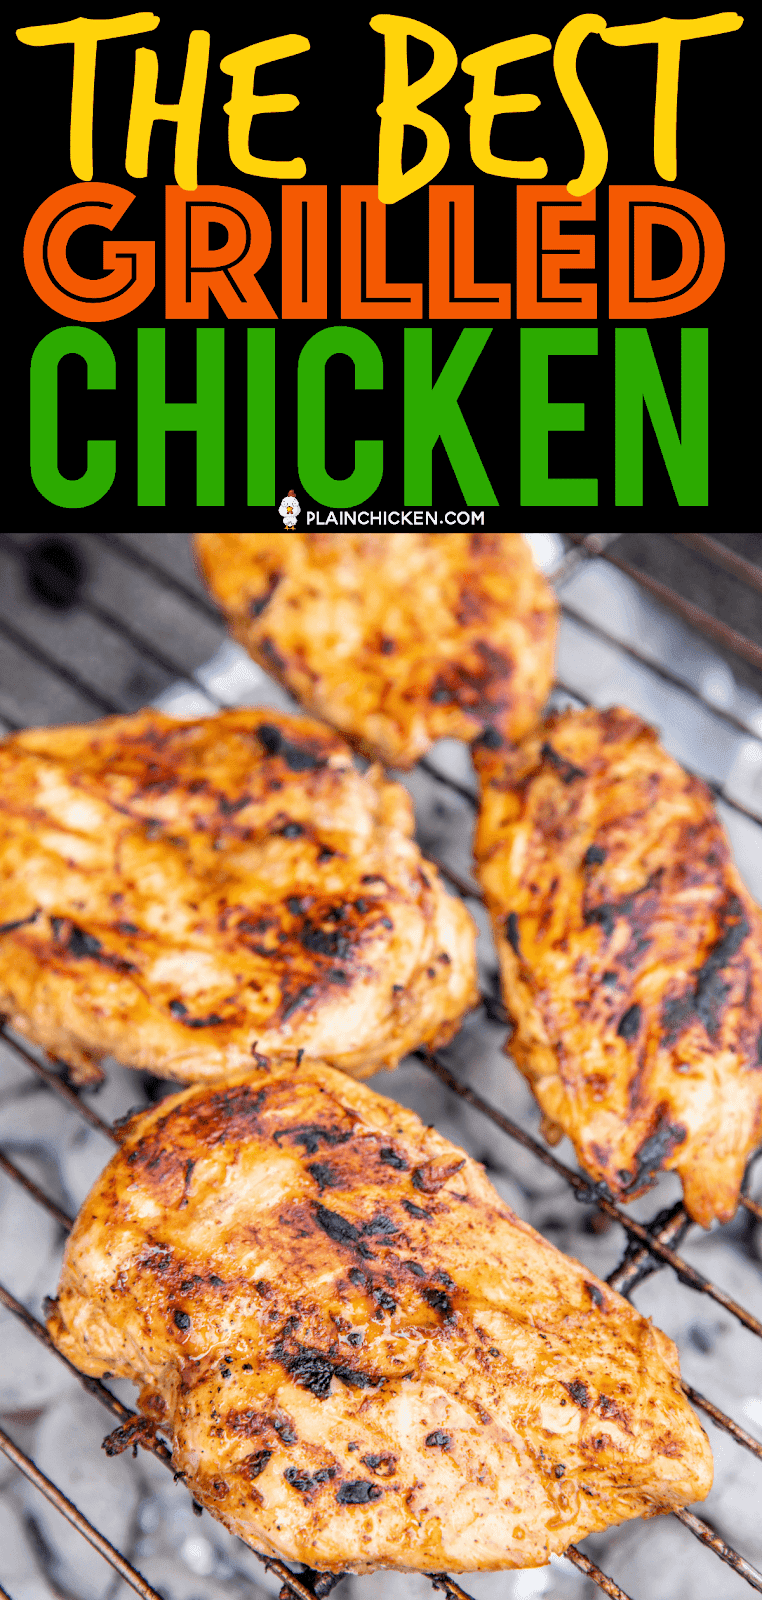 The BEST Grilled Chicken - SO good!!! We made this twice in one week! We just couldn't get enough of it!!! Chicken marinated in olive oil, onion powder, cider vinegar, sugar, chili powder, salt, Worcestershire, pepper, ground mustard, hot sauce and garlic. Leftovers are great on top of salads or in wraps. This is the most tender and juicy chicken we've ever made. SO much amazing flavor!! #chicken #marinade #grill #grilling #grilledchicken